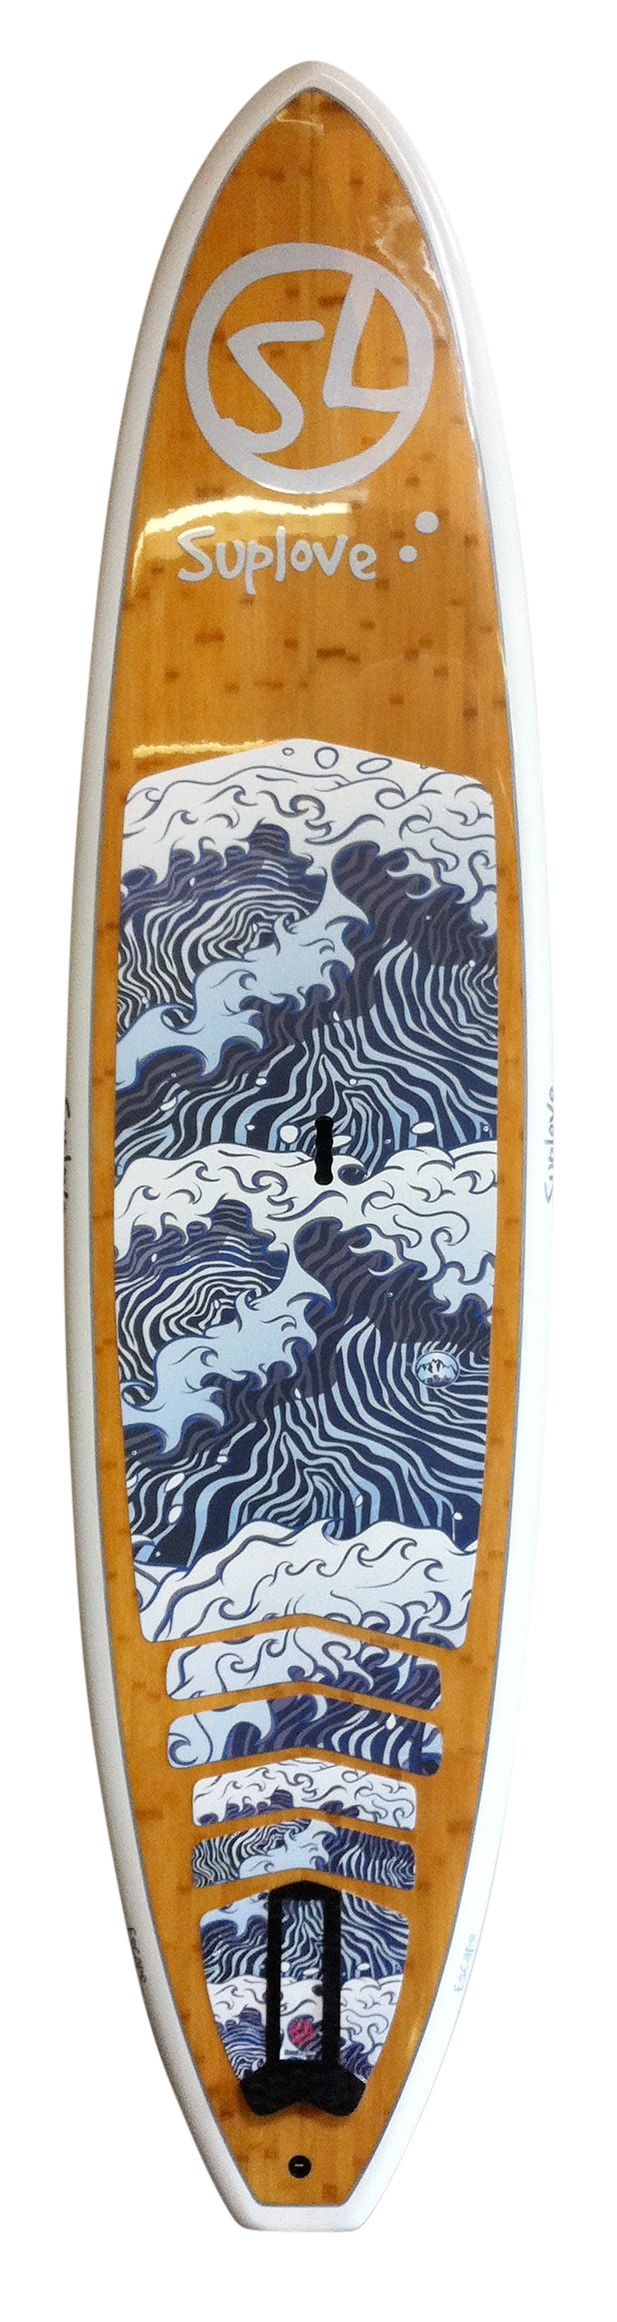 Suplove stand up paddle board paddle surf paddlesurf buy board